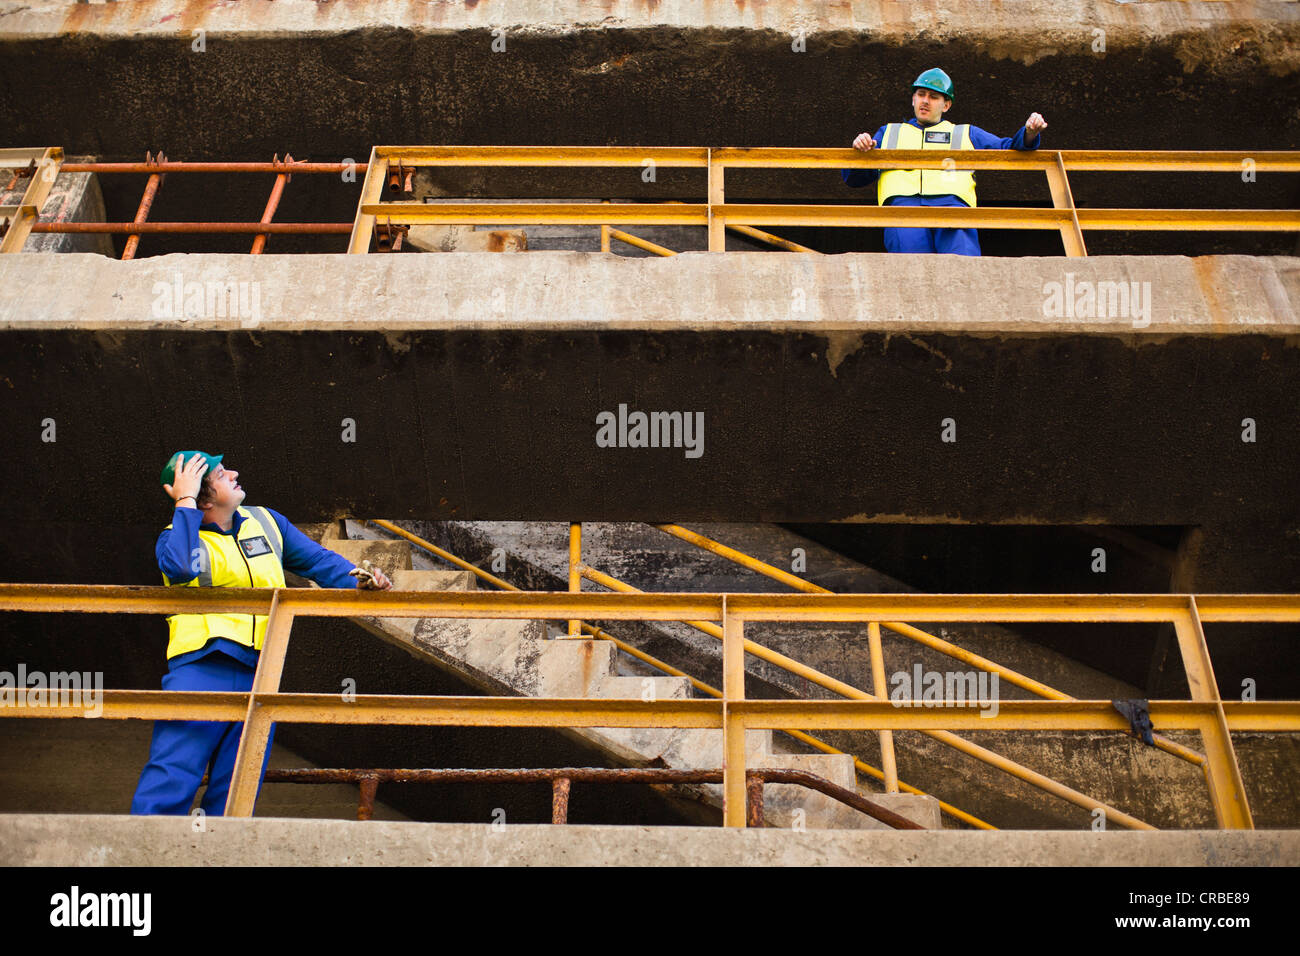 Workers shouting from different floors - Stock Image